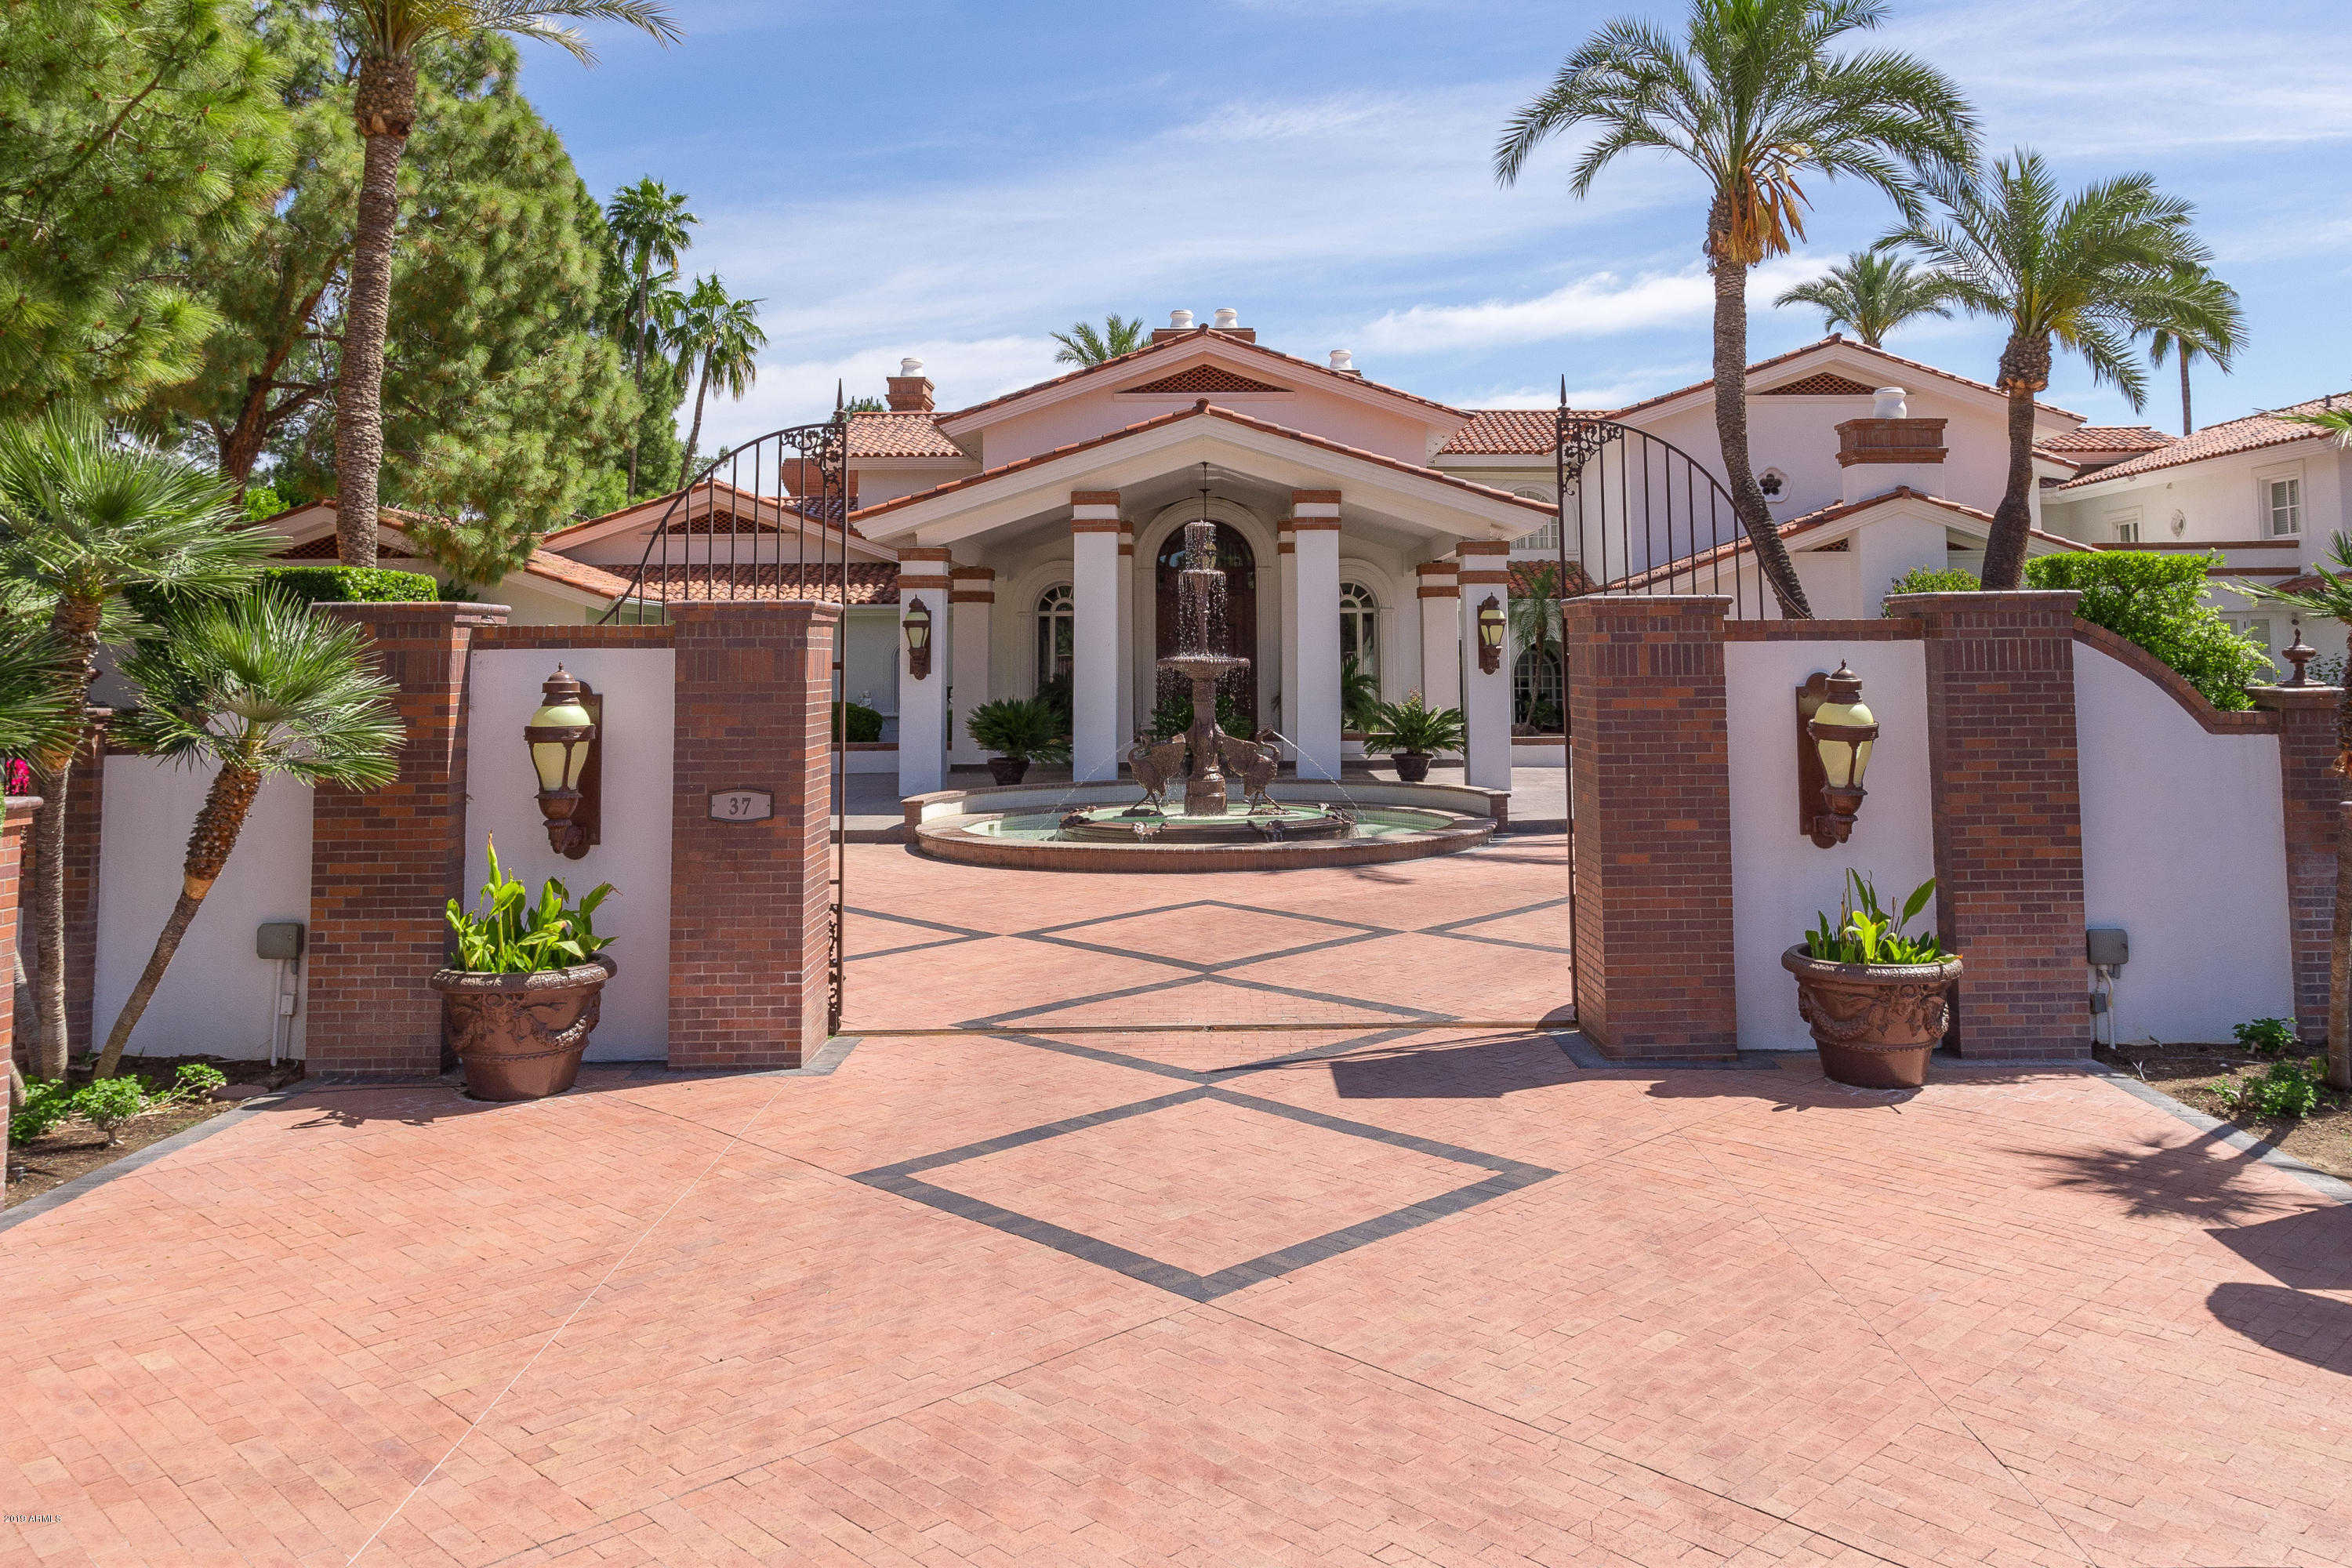 $5,495,000 - 8Br/11Ba - Home for Sale in Biltmore Estates Blk K Lots 37-44, Phoenix